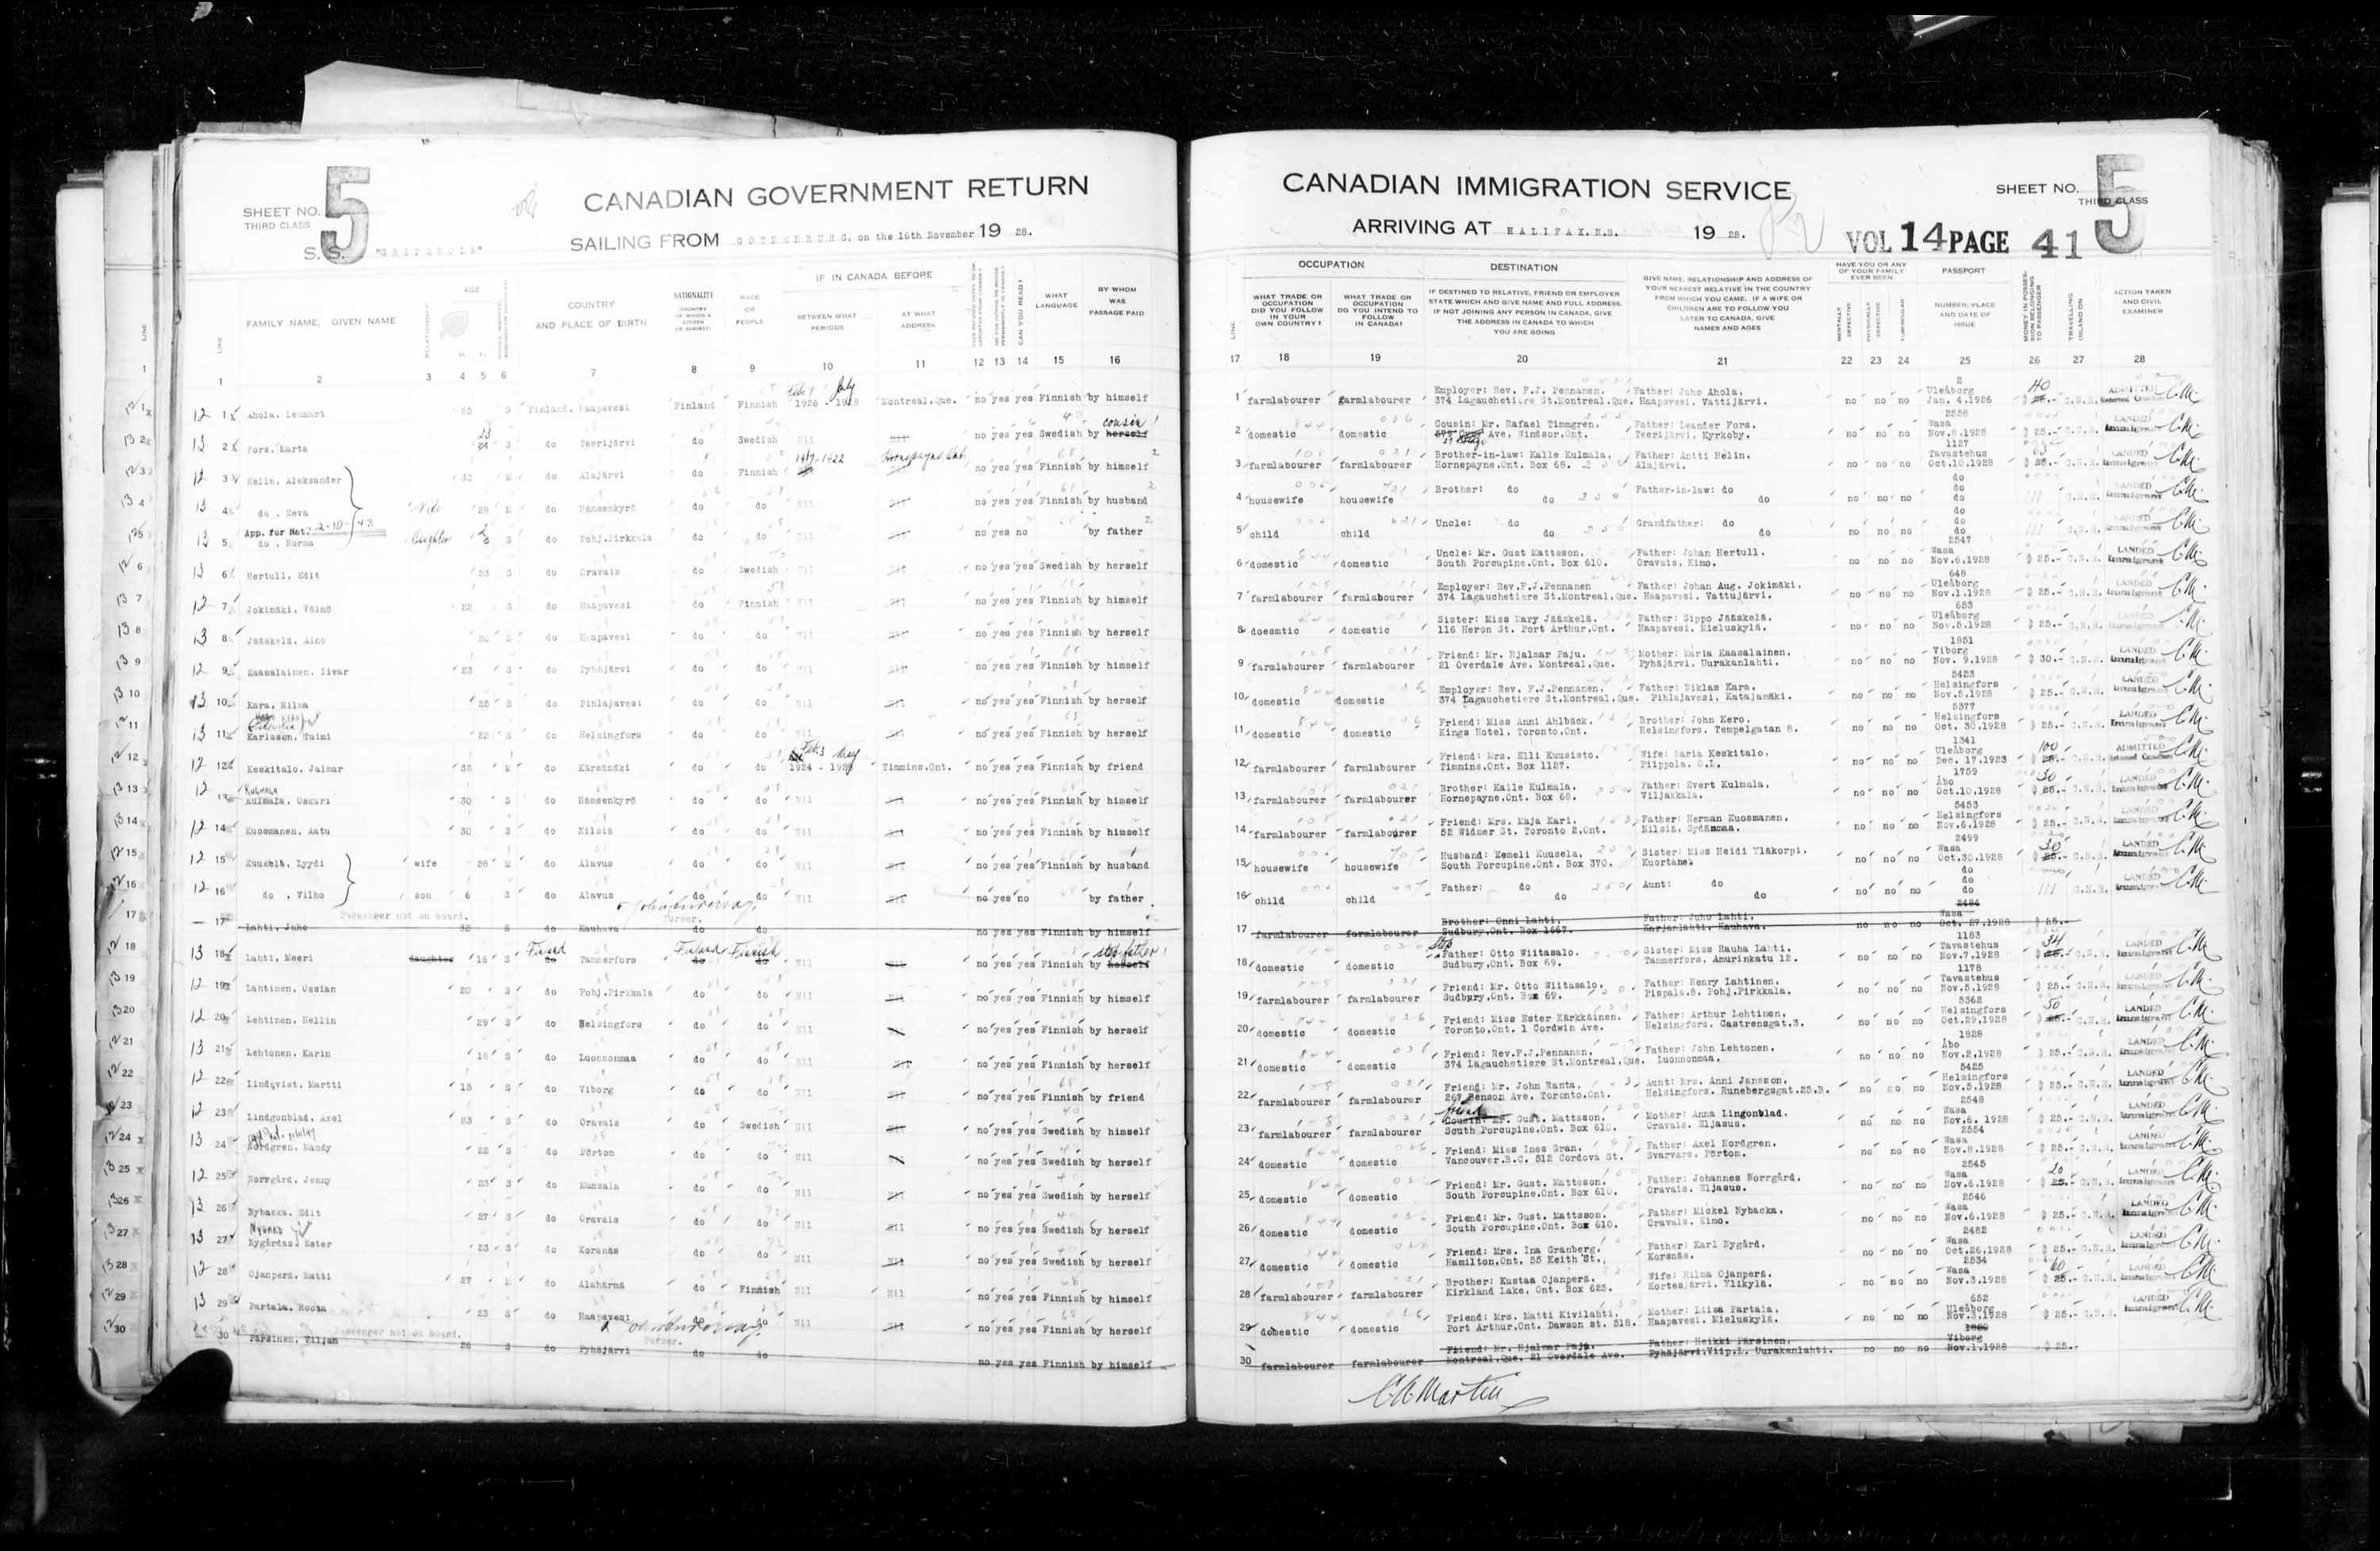 Title: Passenger Lists: Halifax (1925-1935) - Mikan Number: 134853 - Microform: t-14816